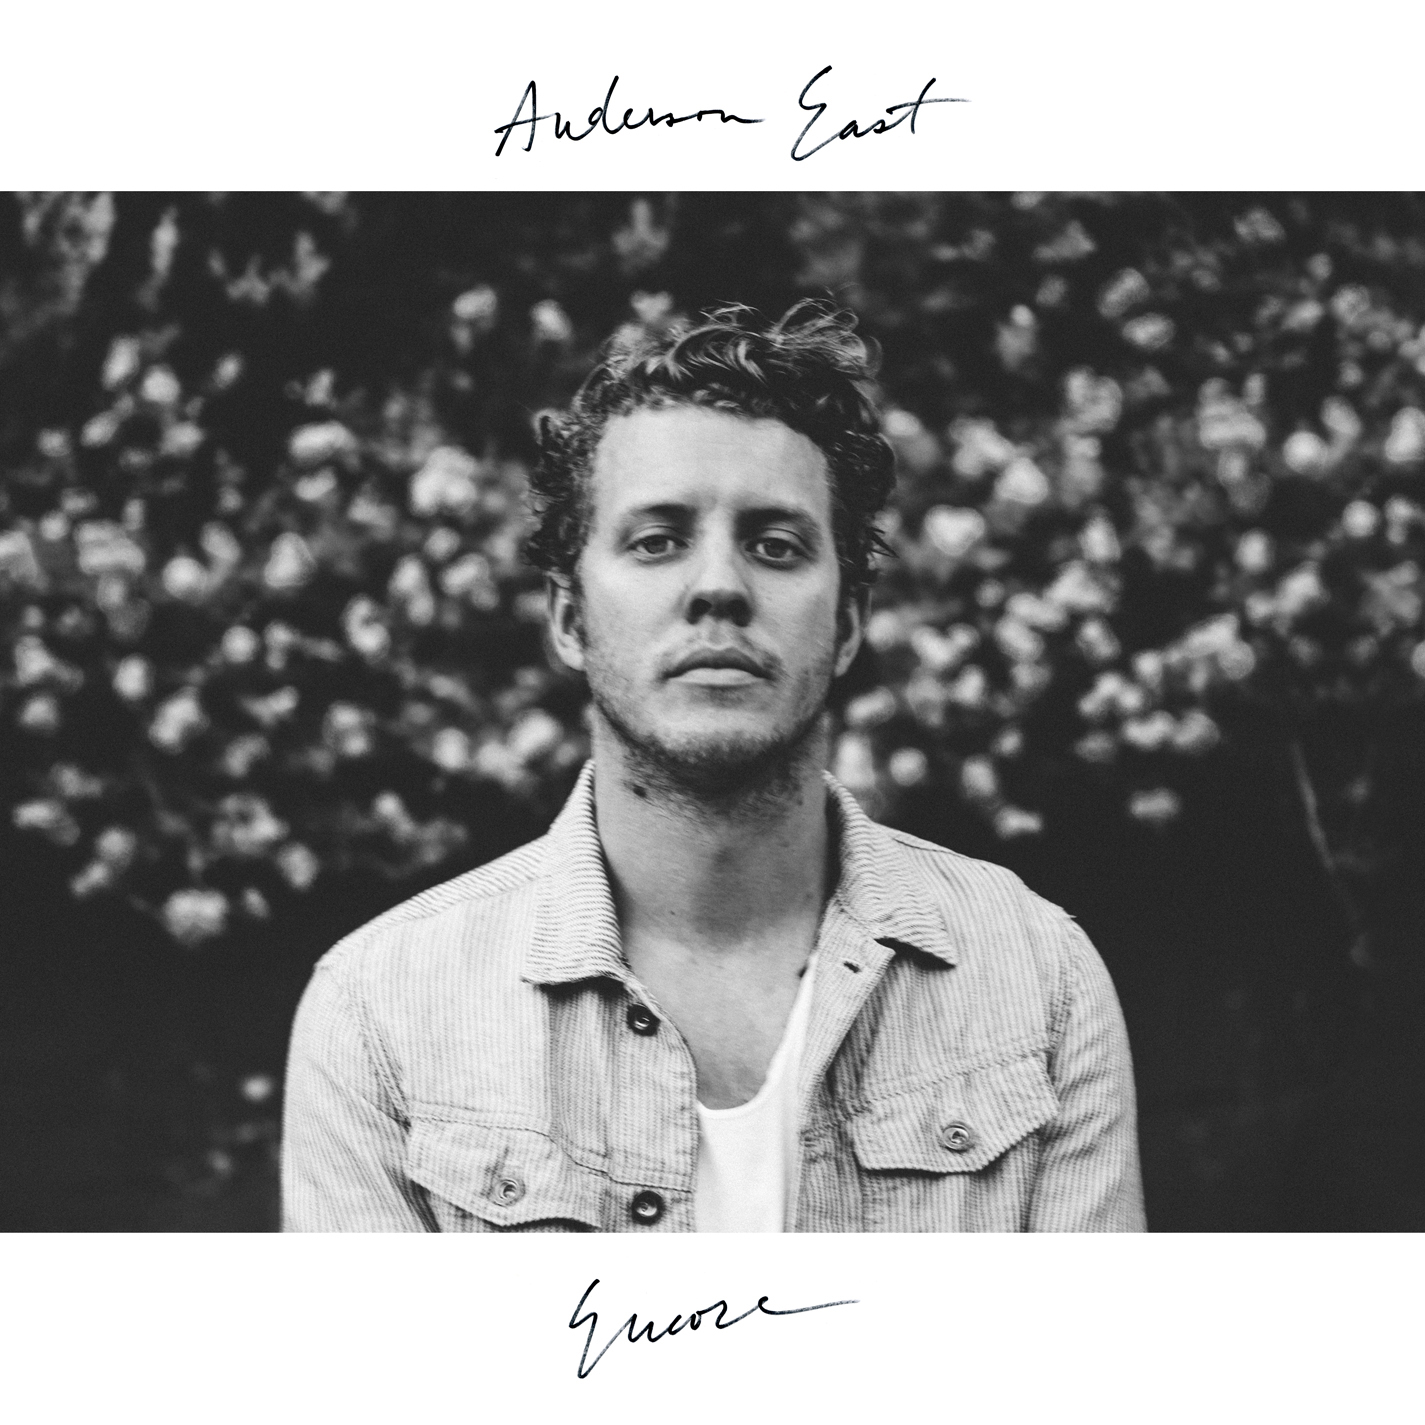 Anderson East, 'King for a Day'